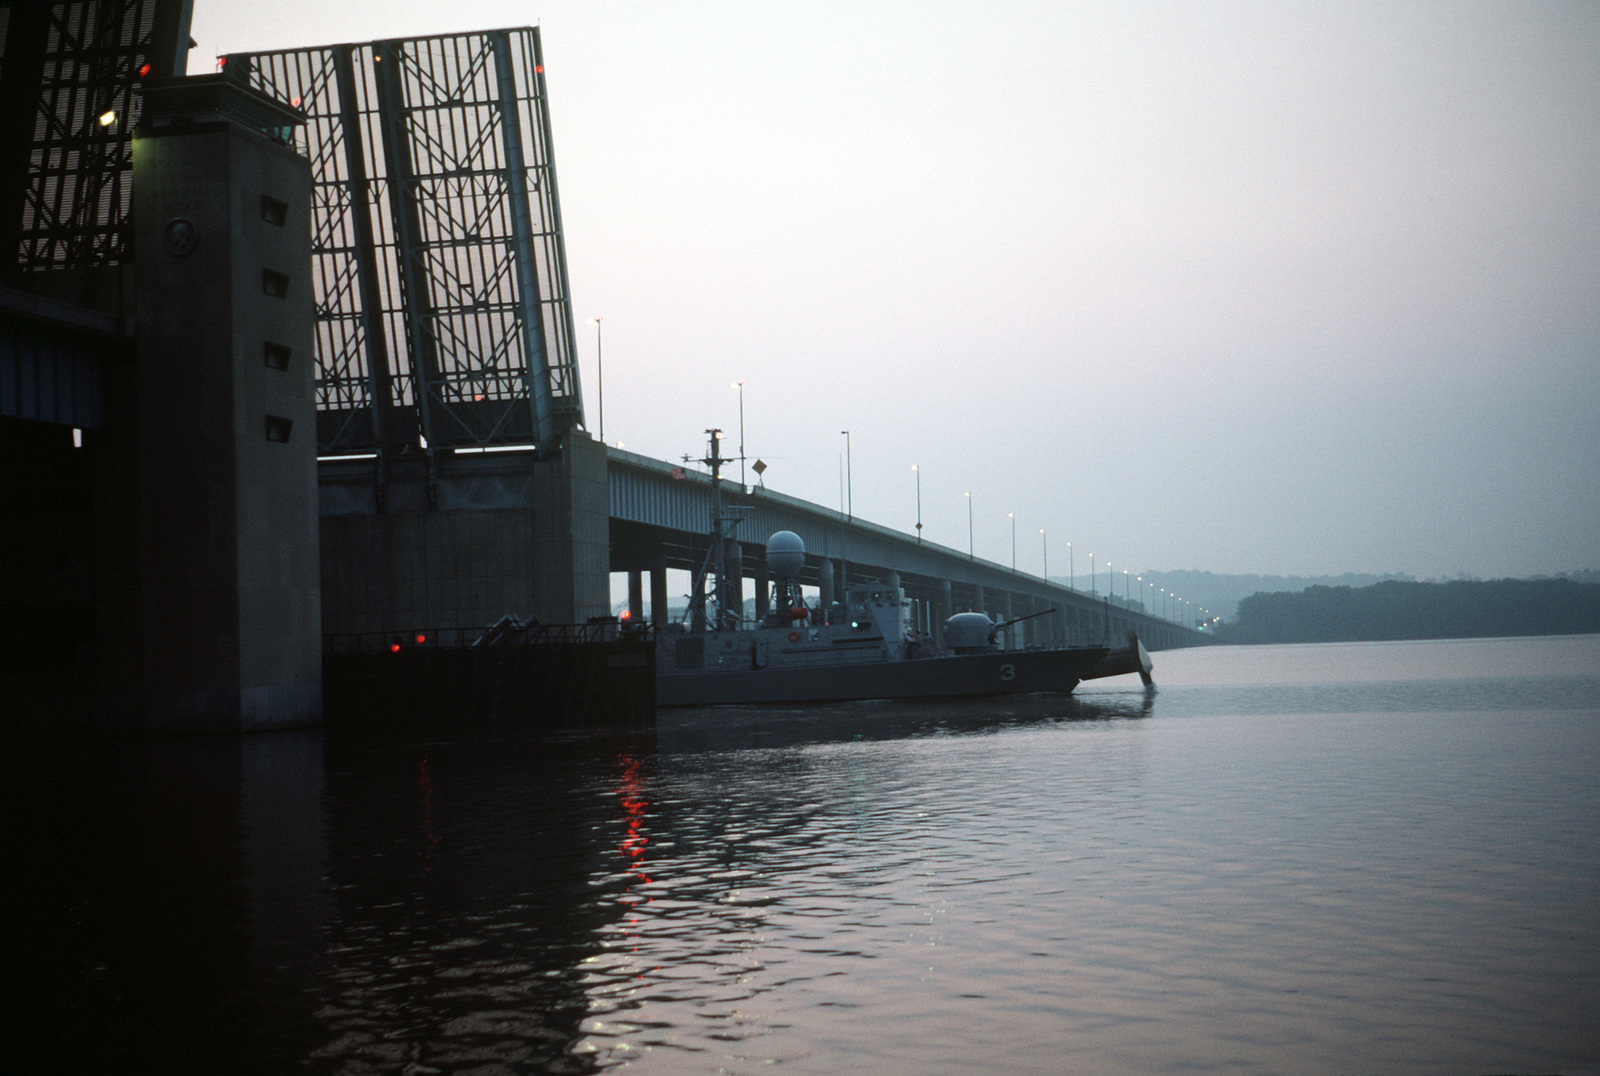 The patrol missile hydrofoil USS TAURUS (PHM 3) passes through the open draw span of the Woodrow Wilson Memorial Bridge on the Potomac River